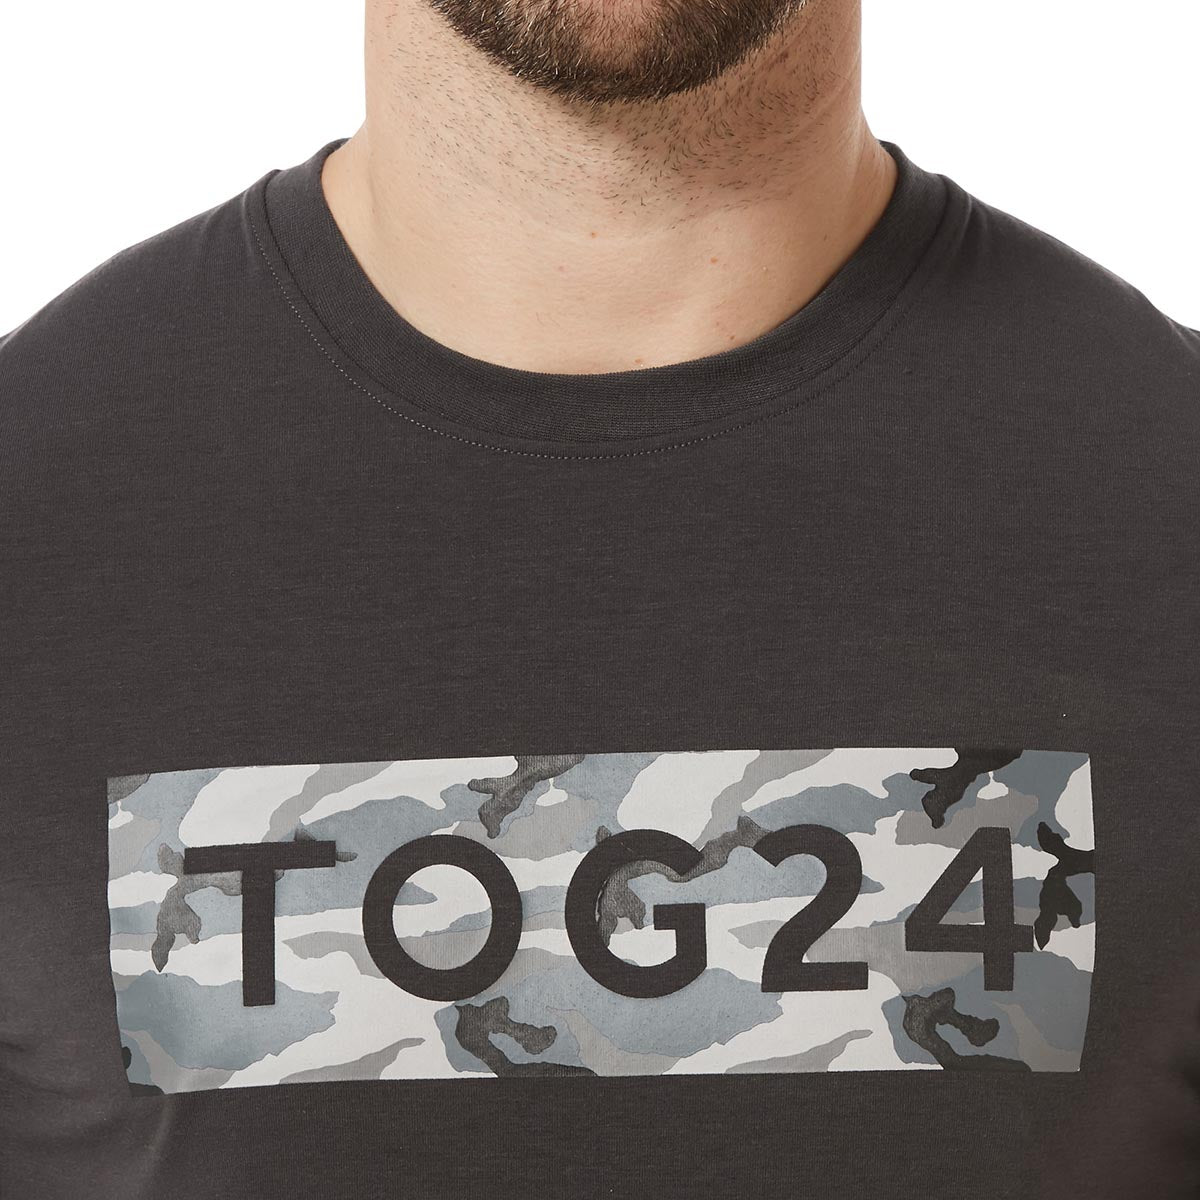 Towler Mens Performance Graphic T-Shirt - Charcoal image 4